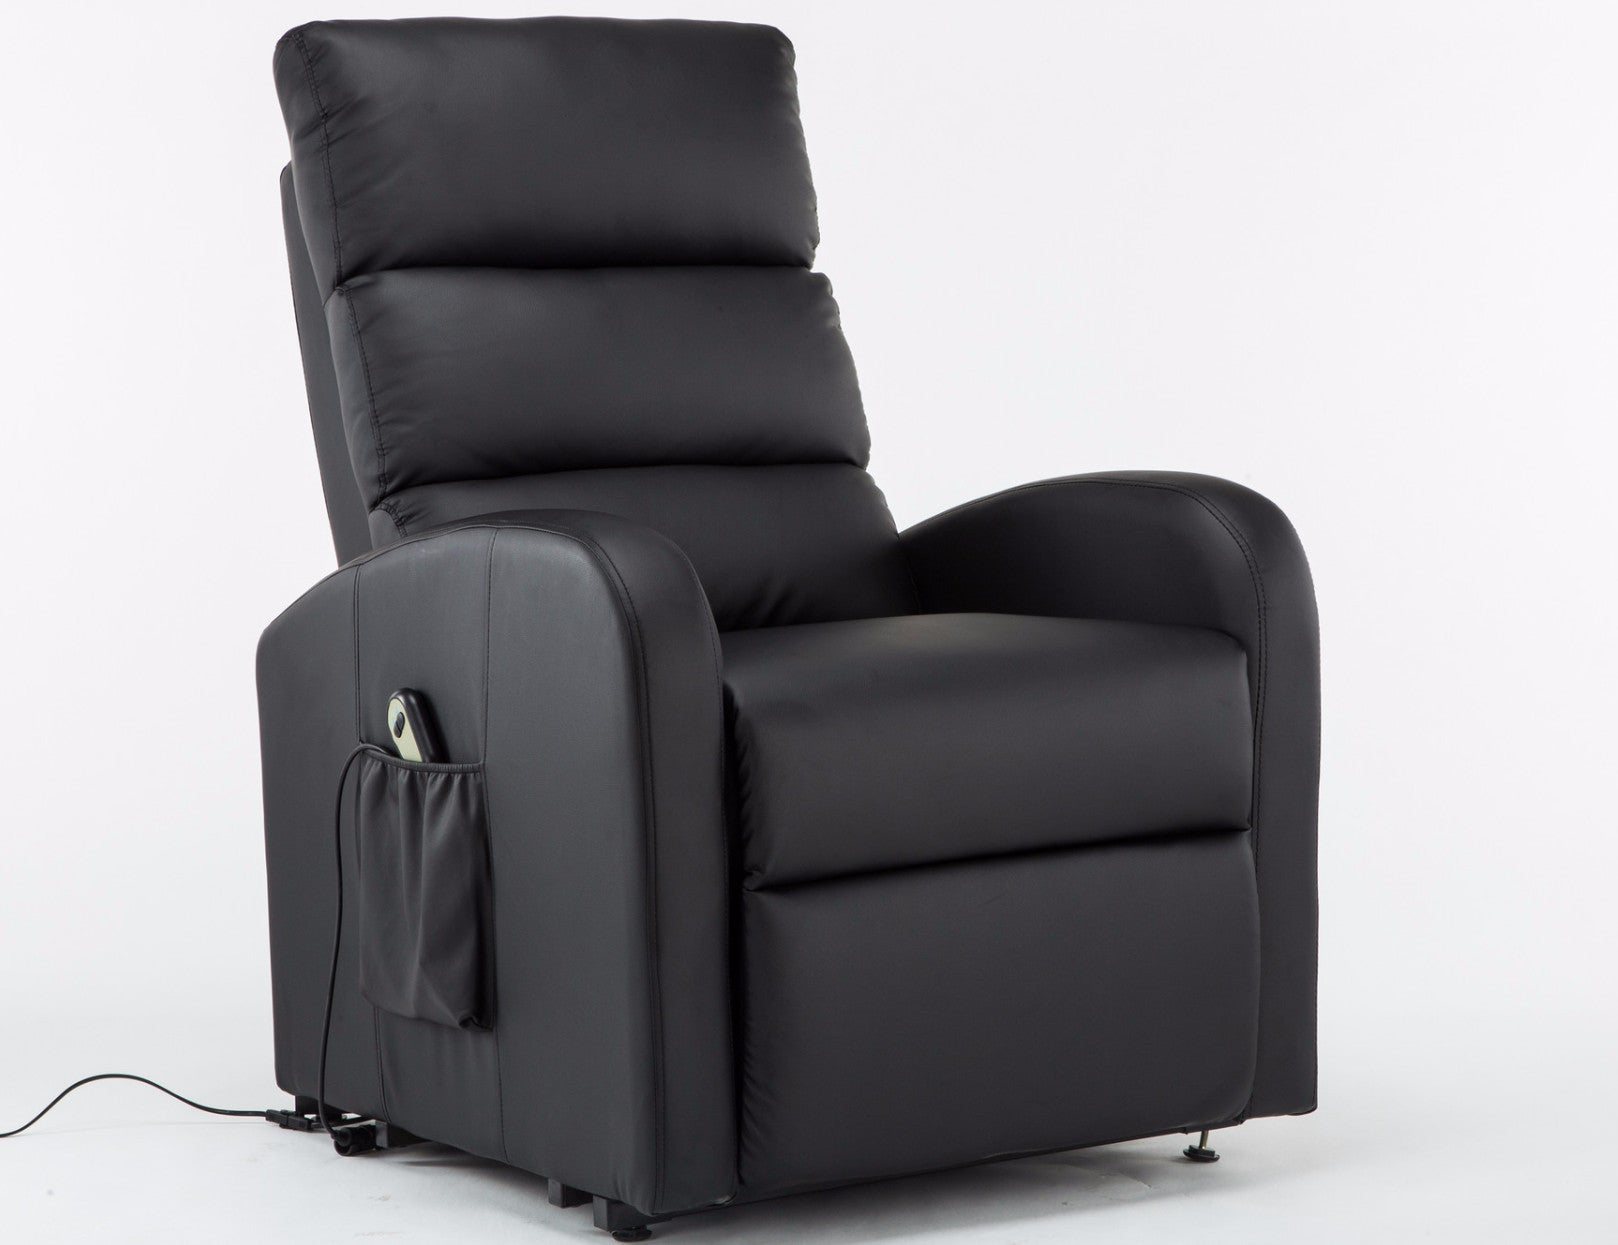 Lift Power Lift Recliner Bonded Leather Chair & Lift Power Lift Recliner Bonded Leather Chair - Sofamania islam-shia.org